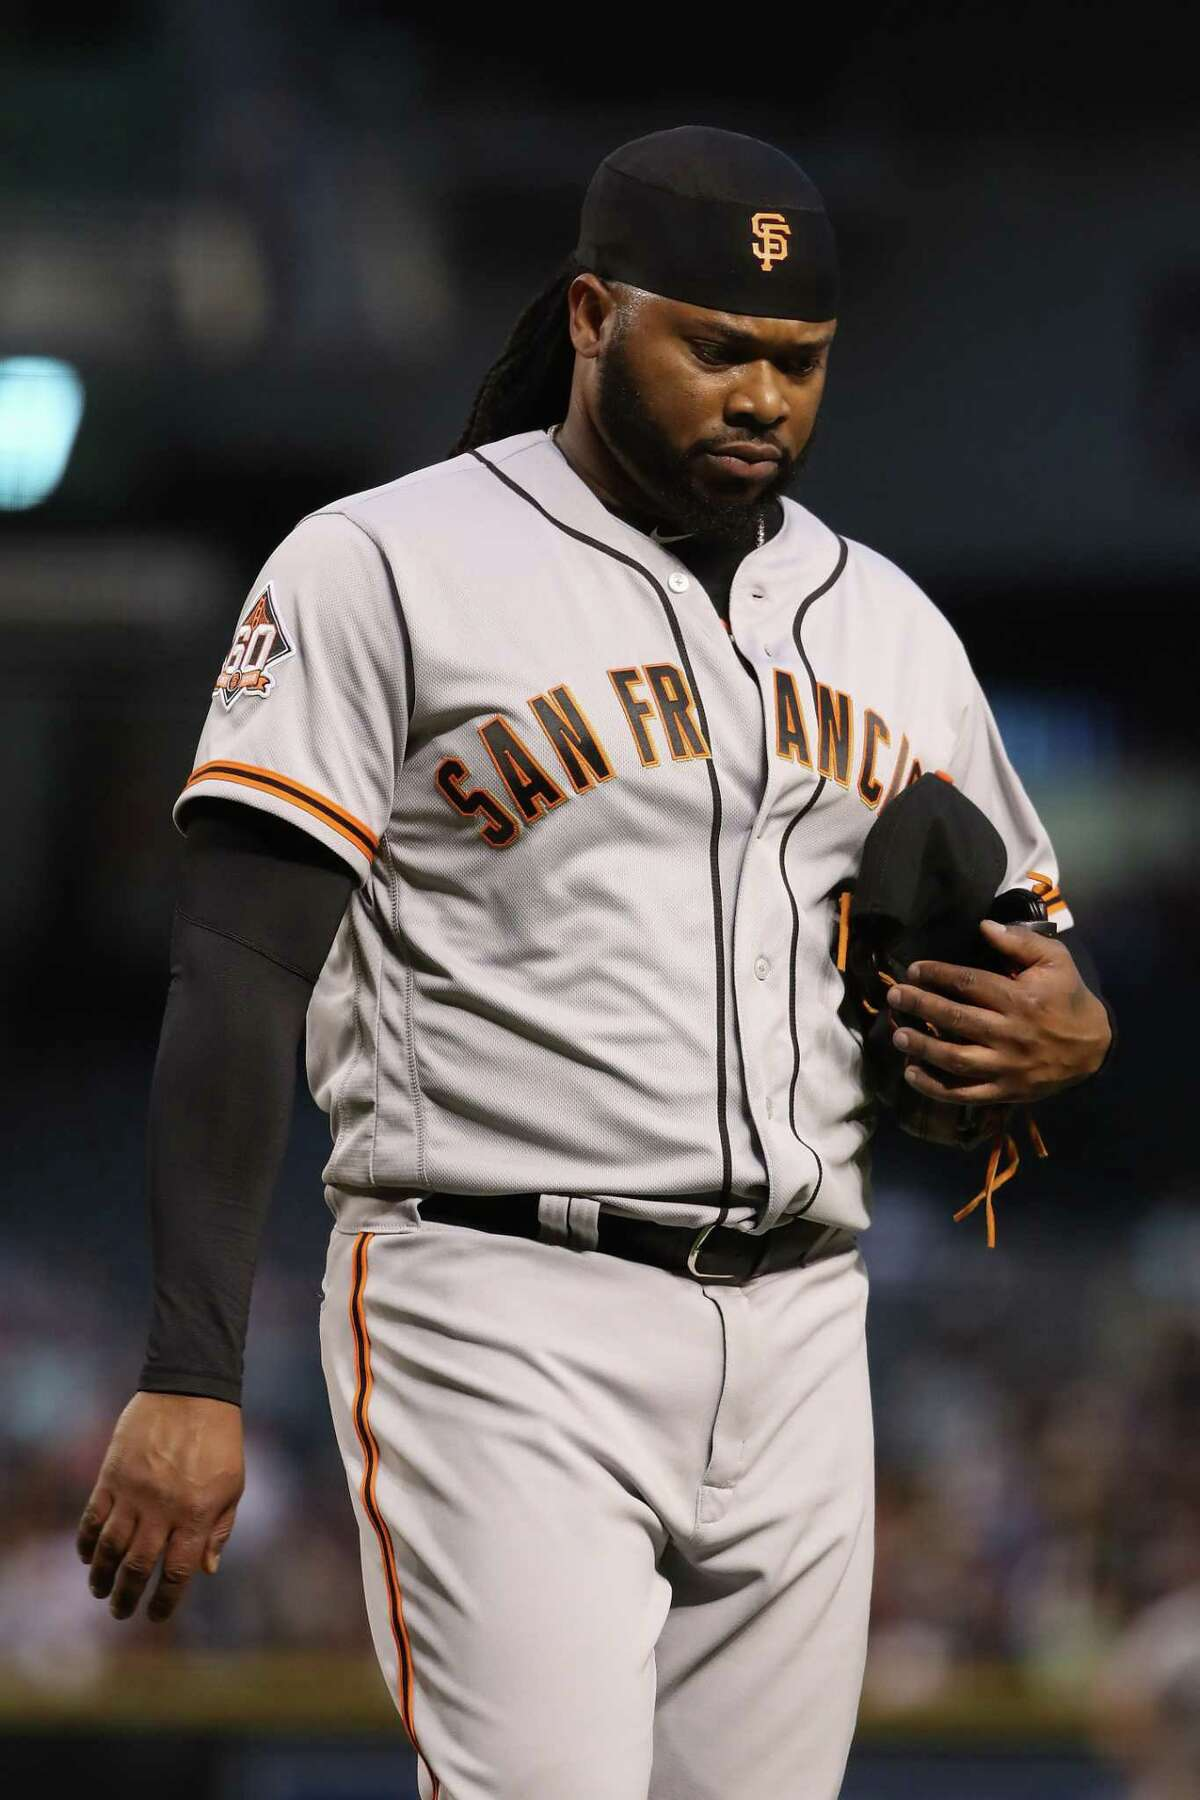 PHOENIX, AZ - APRIL 17: Starting pitcher Johnny Cueto #47 of the San Francisco Giants walks to the dugout after pitching against the Arizona Diamondbacks during the first inning of the MLB game at Chase Field on April 17, 2018 in Phoenix, Arizona. (Photo by Christian Petersen/Getty Images)